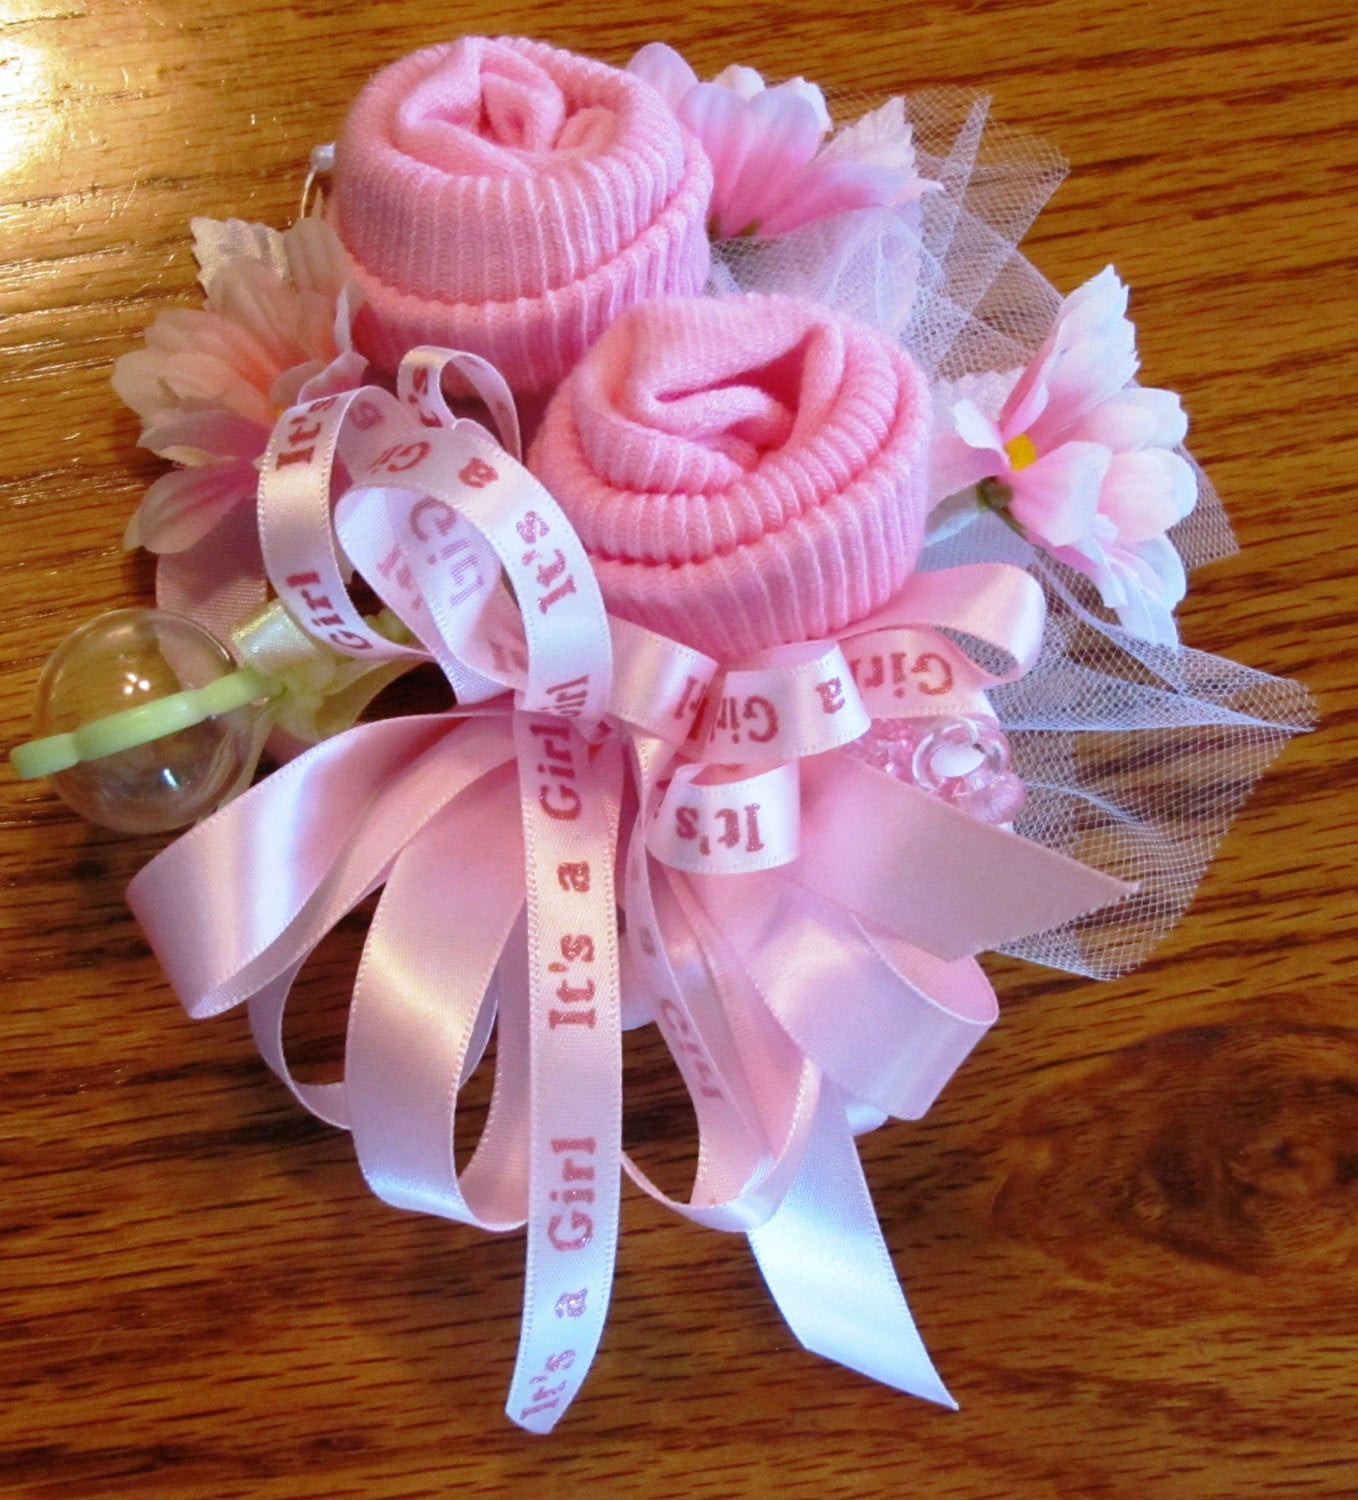 Best ideas about Baby Shower Corsages DIY . Save or Pin Baby Sock corsage Handmade baby sock shower corsage Baby Now.